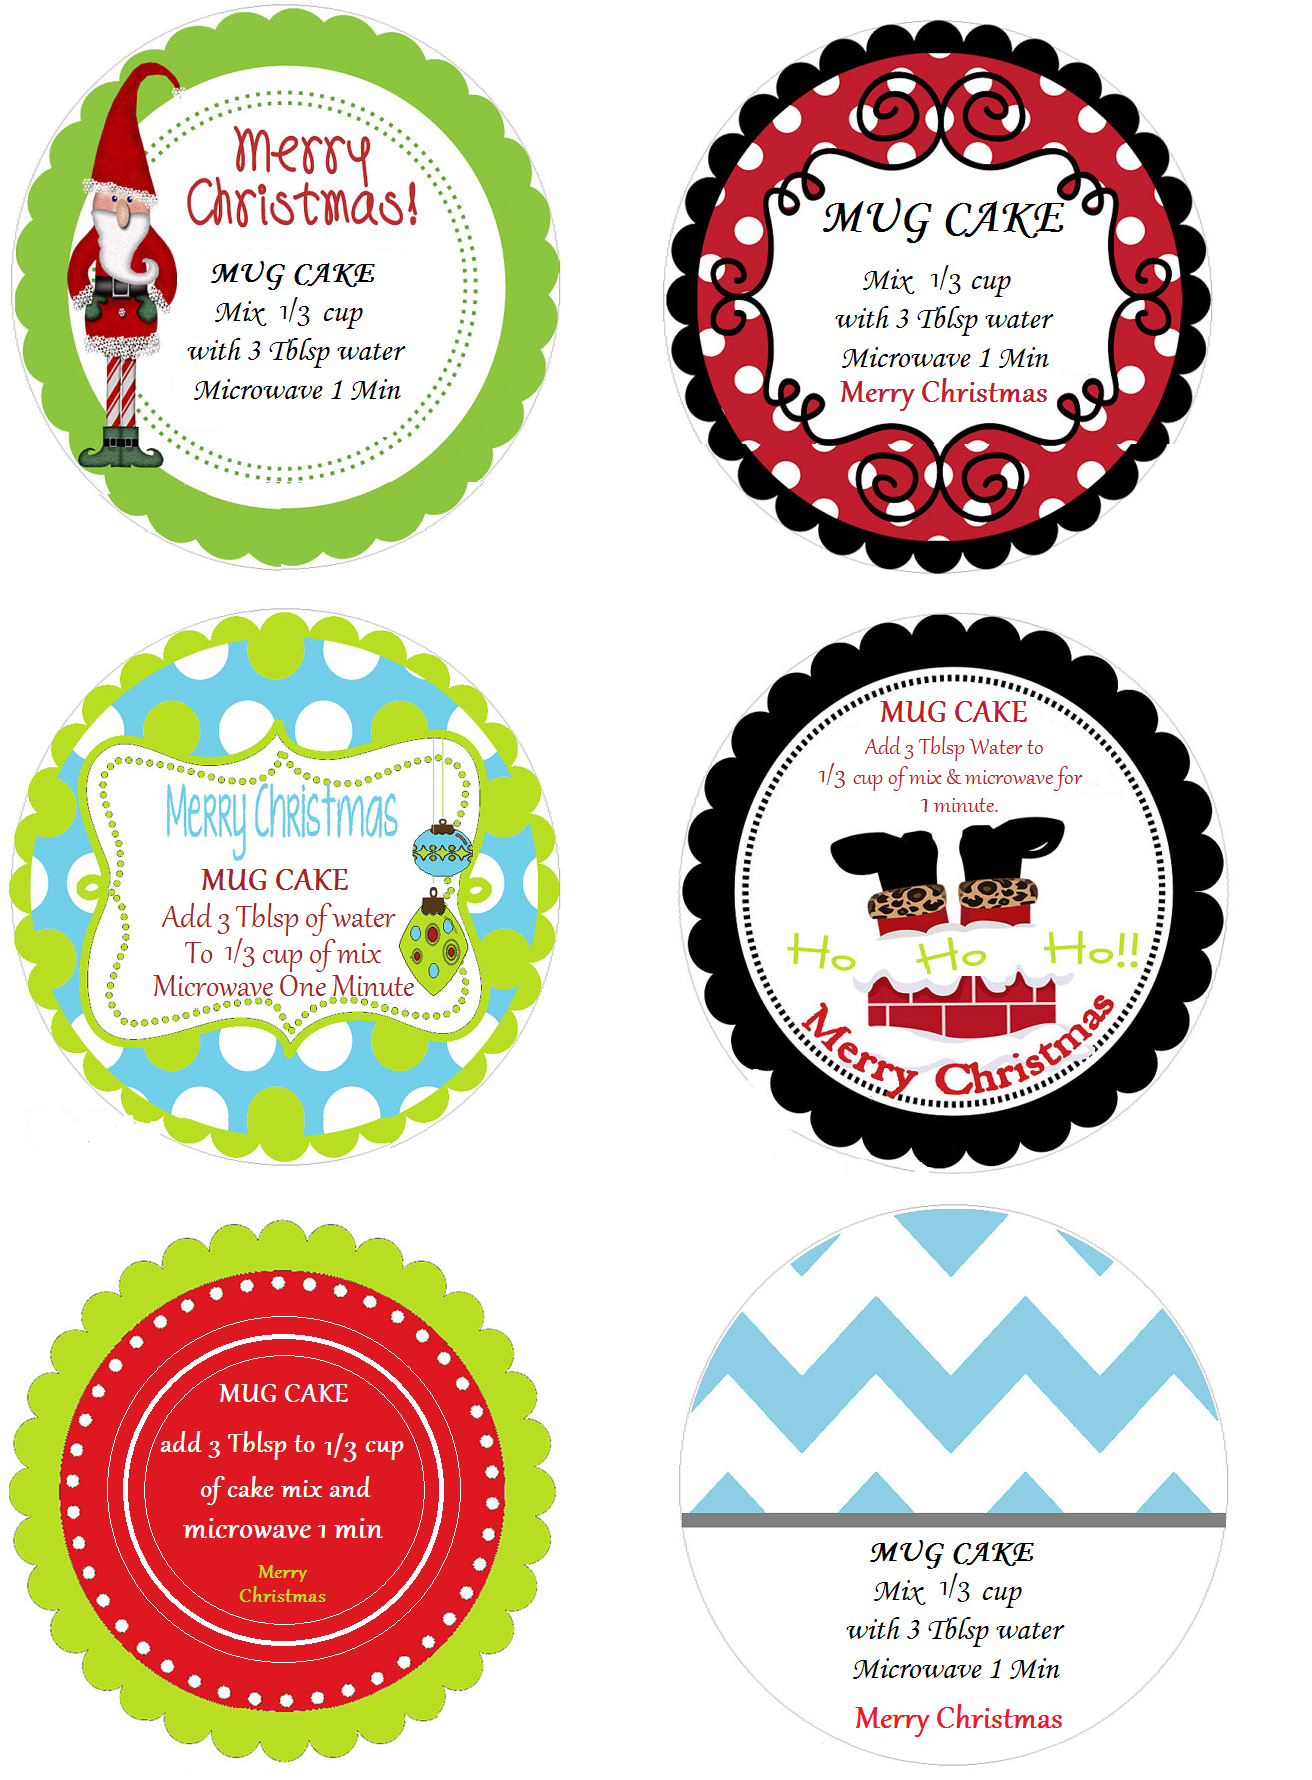 Canning Jar Labels Designed For Mug Cakes Christmas Themed Using Mspaint You Can Print As Portrait 100 Fit On Canning Jar Labels Christmas Mugs Mug Cake